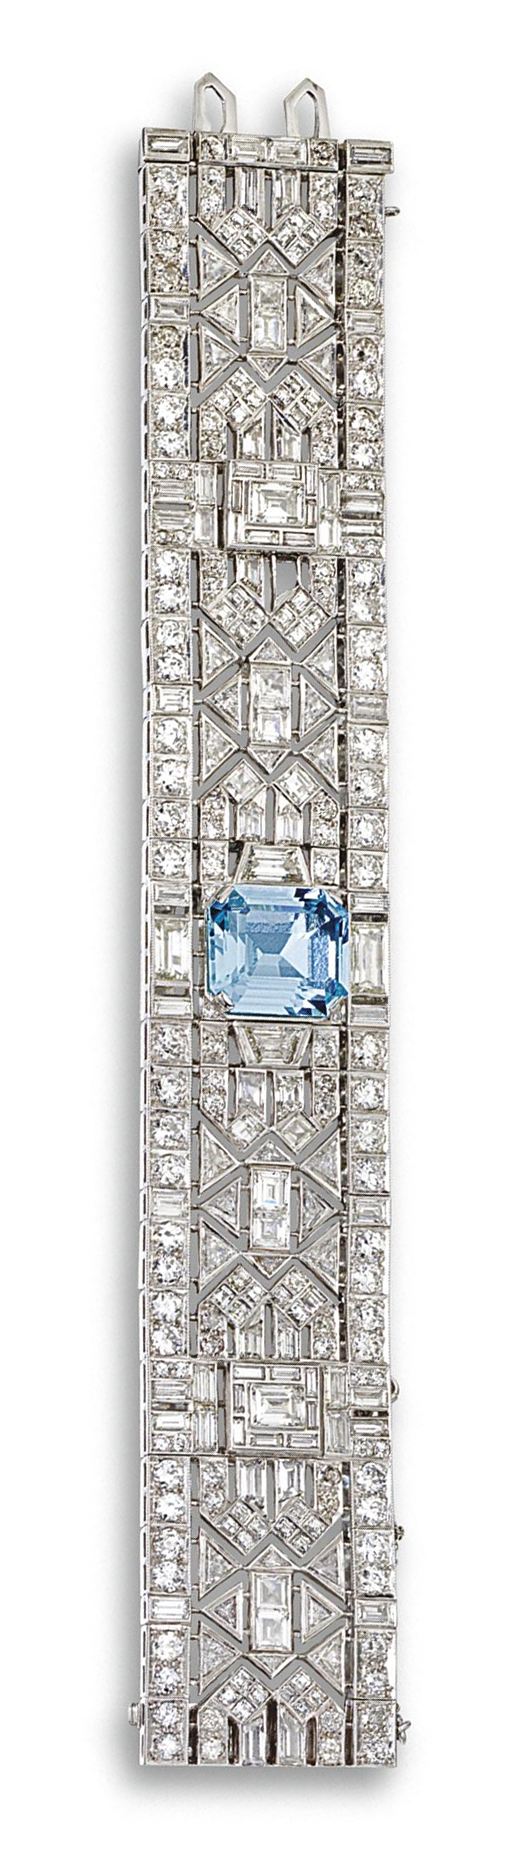 AQUAMARINE AND DIAMOND BRACELET, CIRCA 1935. The wide articulated band of open geometric design set with 102 old European-cut, 106 baguette, 32 triangular-shaped, and 20 whistle-cut, trapeze-cut and emerald-cut diamonds, altogether weighing approximately 43.00 carats, the center set with an emerald-cut aquamarine of approximately 13.75 carats, mounted in platinum